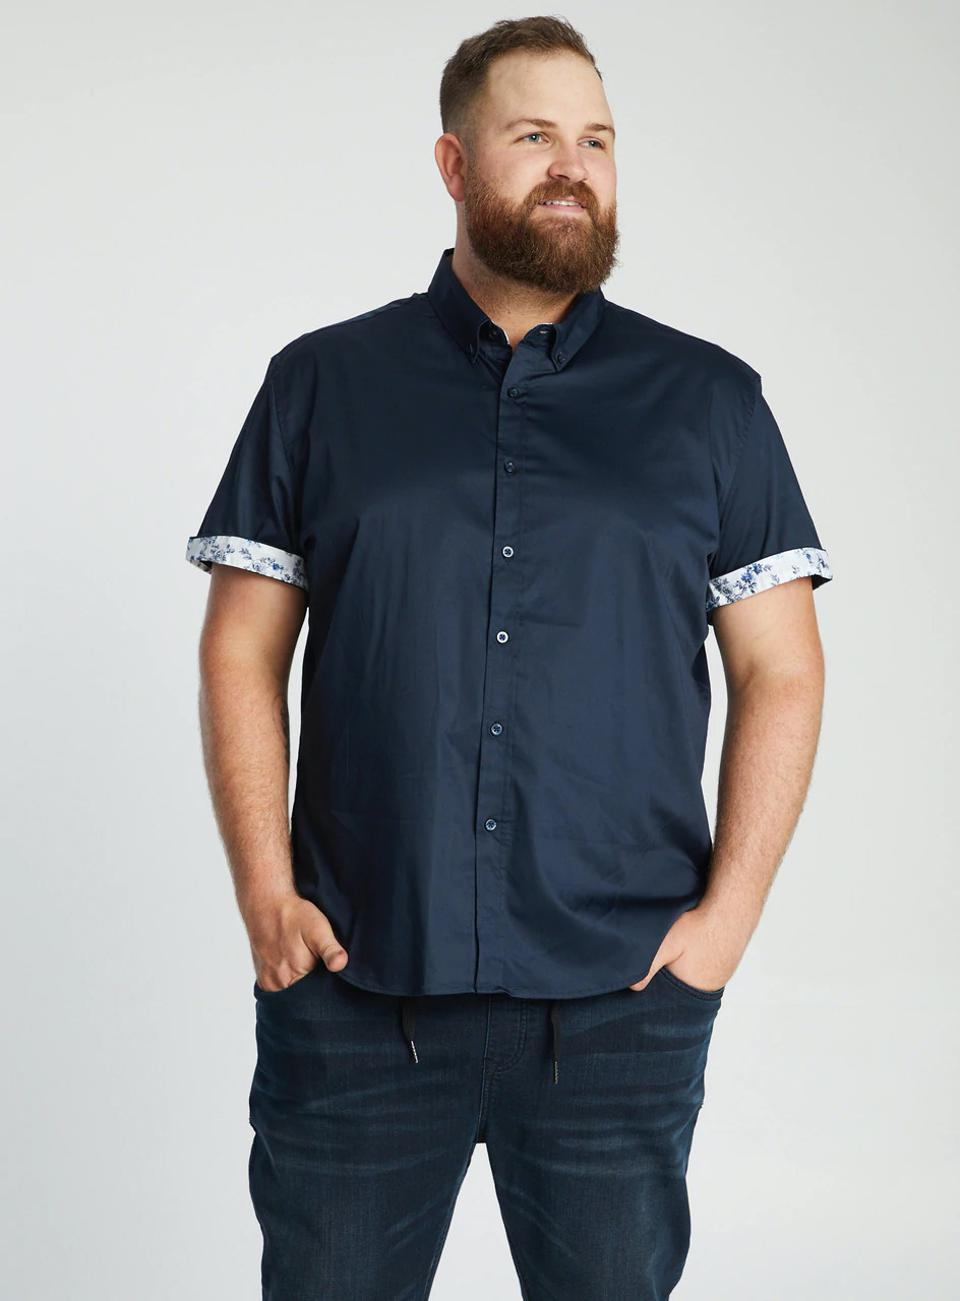 Smarten up your look with the Carter Geo Print Stretch Shirt by Johnny Bigg. Pair it with jeans or chinos and boat shoes for a complete look.